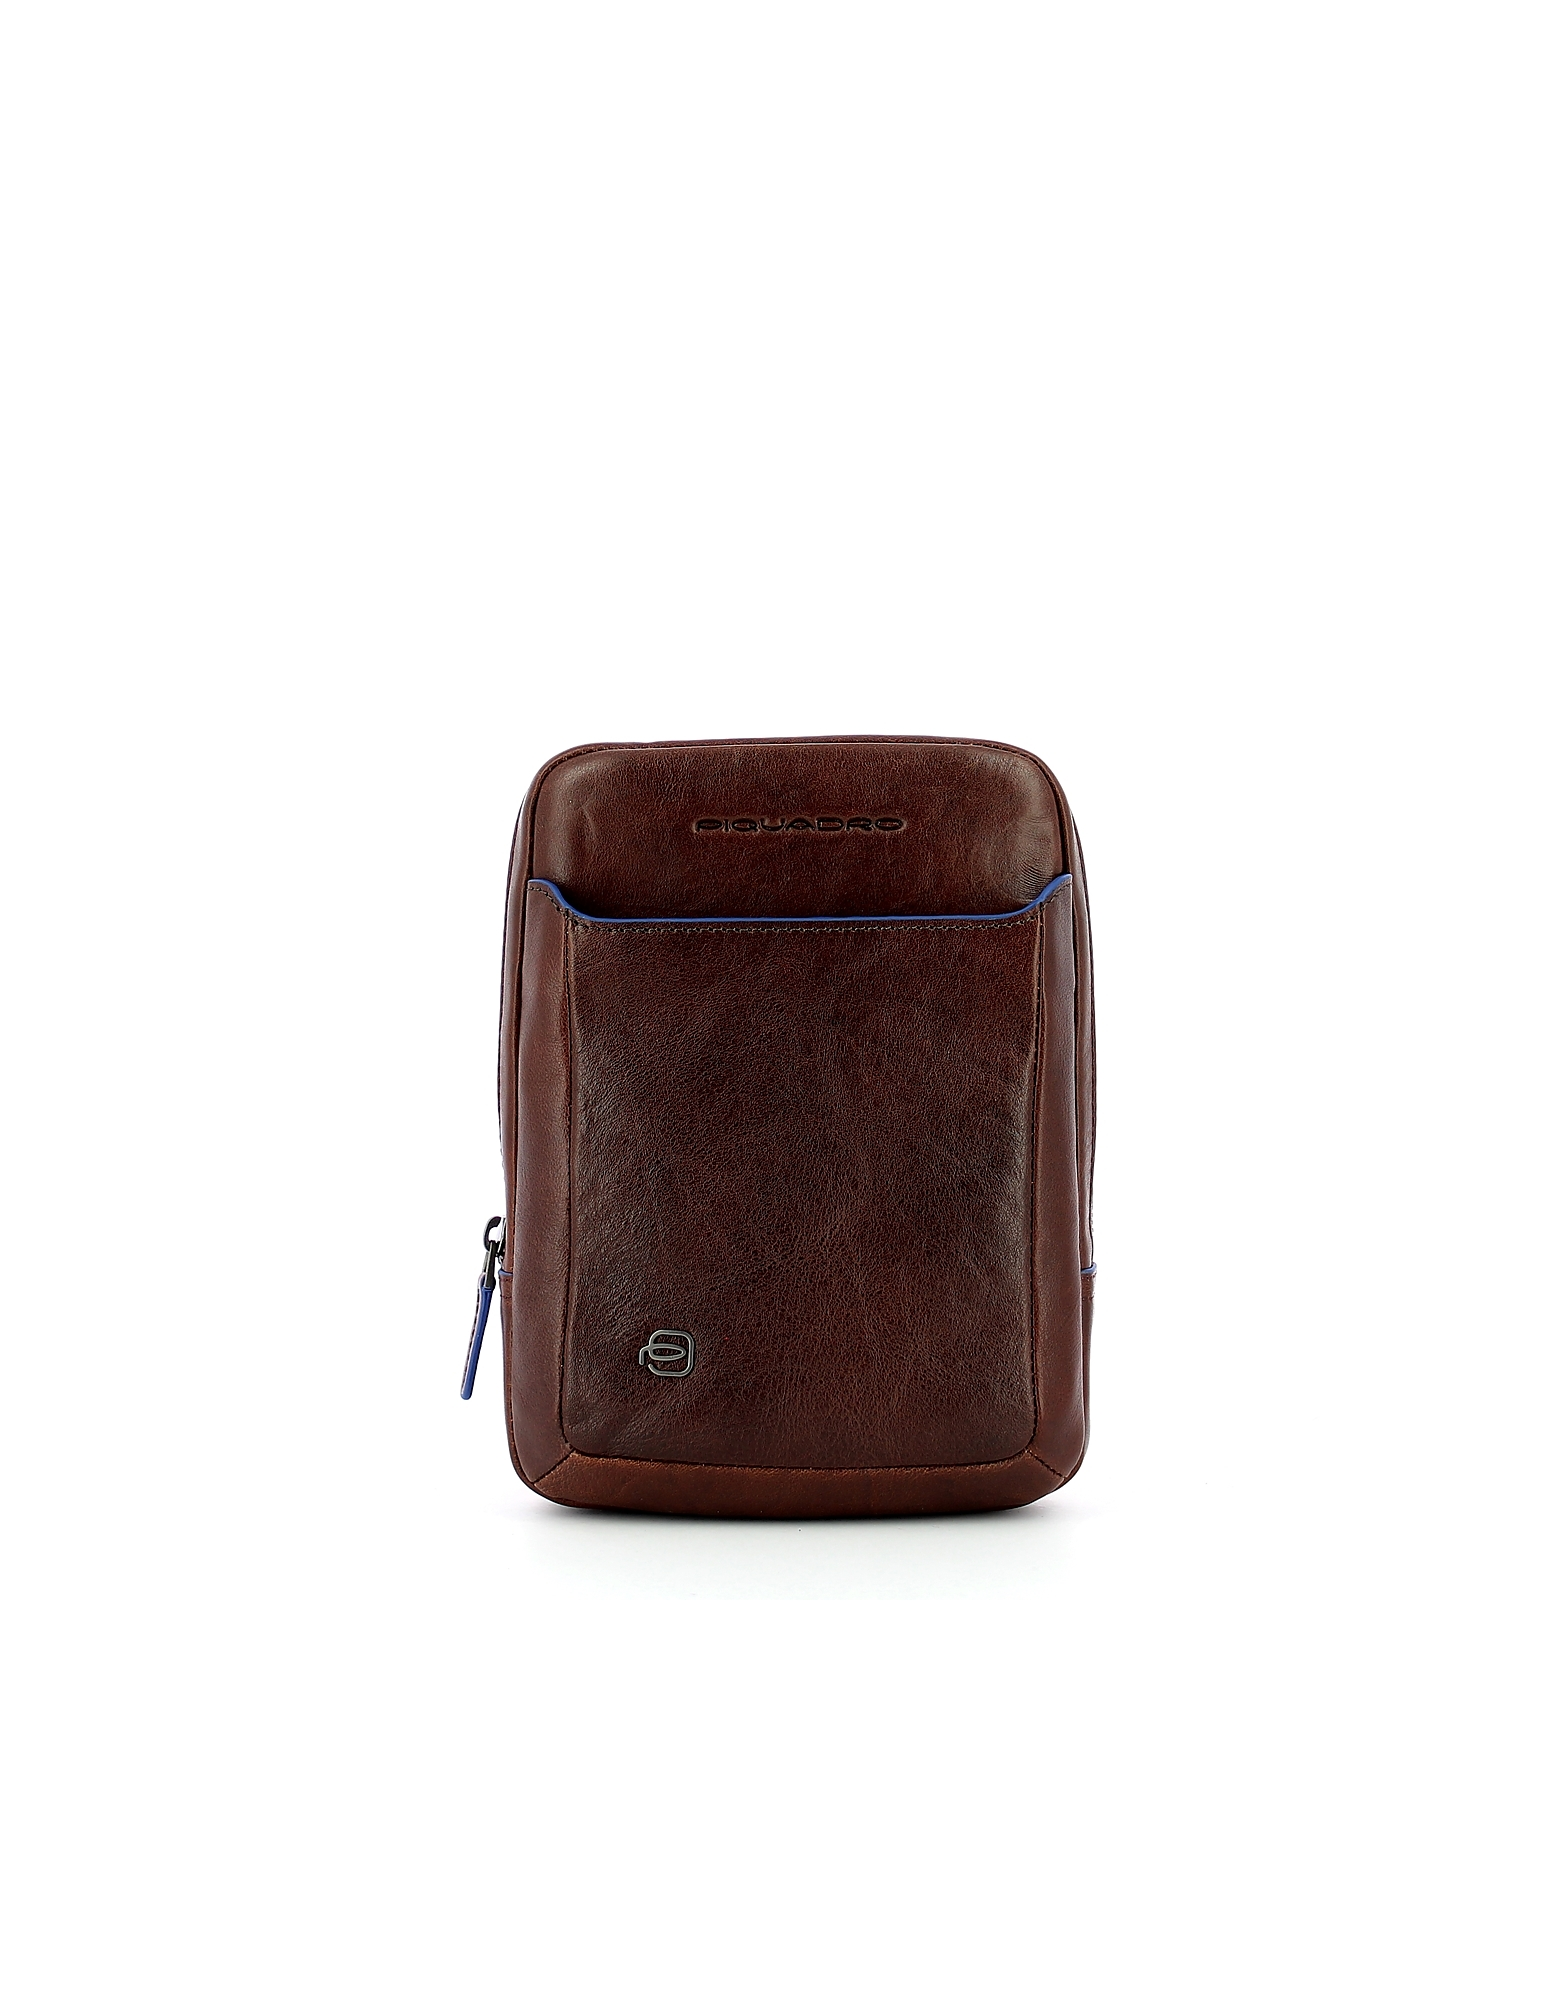 Piquadro Designer Men's Bags, Men's Brown Crossbody Bag